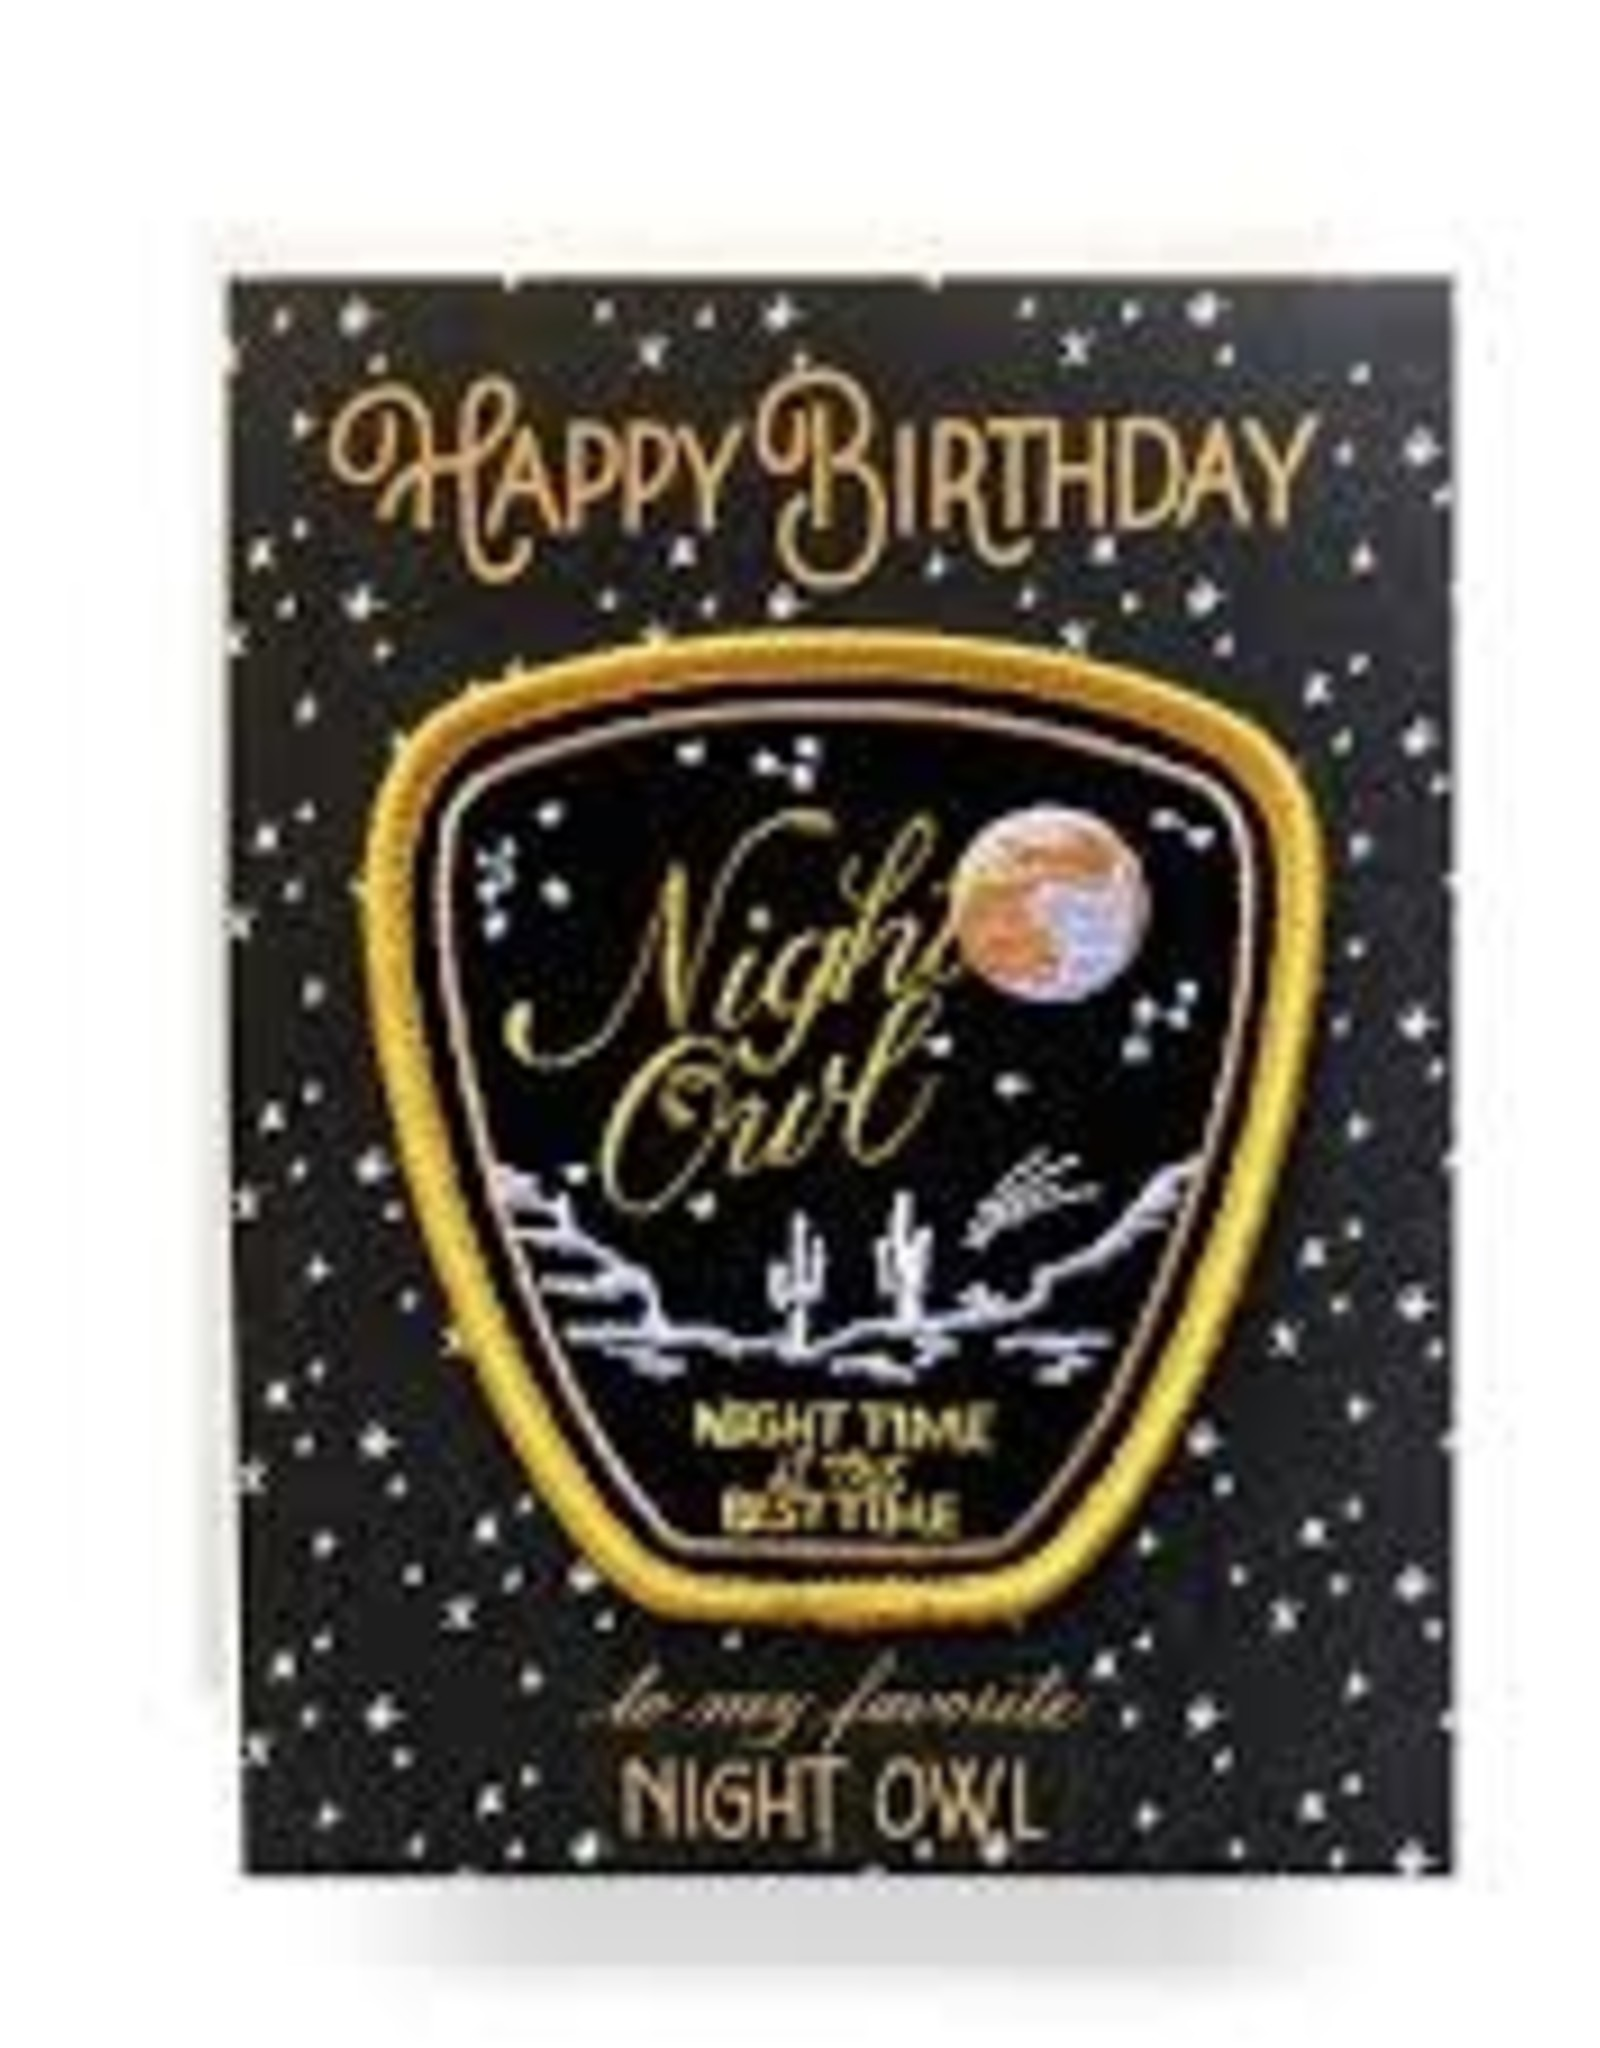 Night Owl Birthday Greeting Card with Patch - Antiquaria